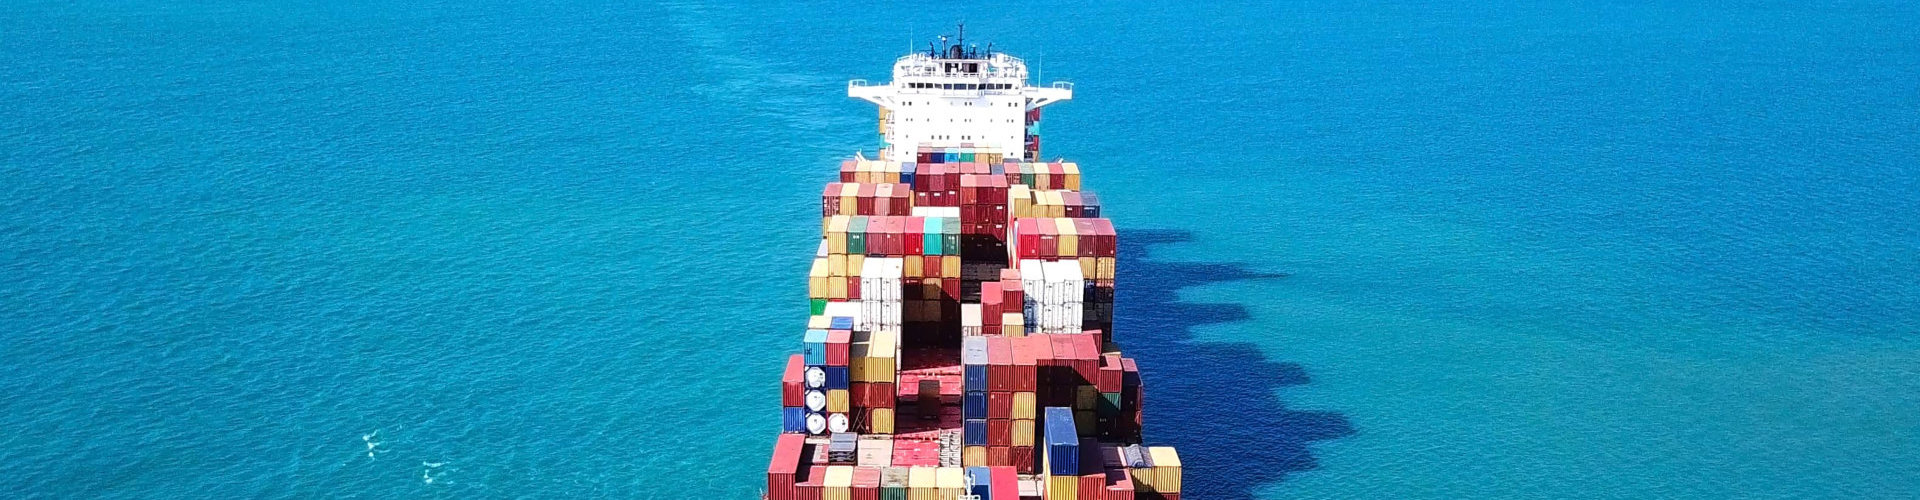 portrait of a container ship